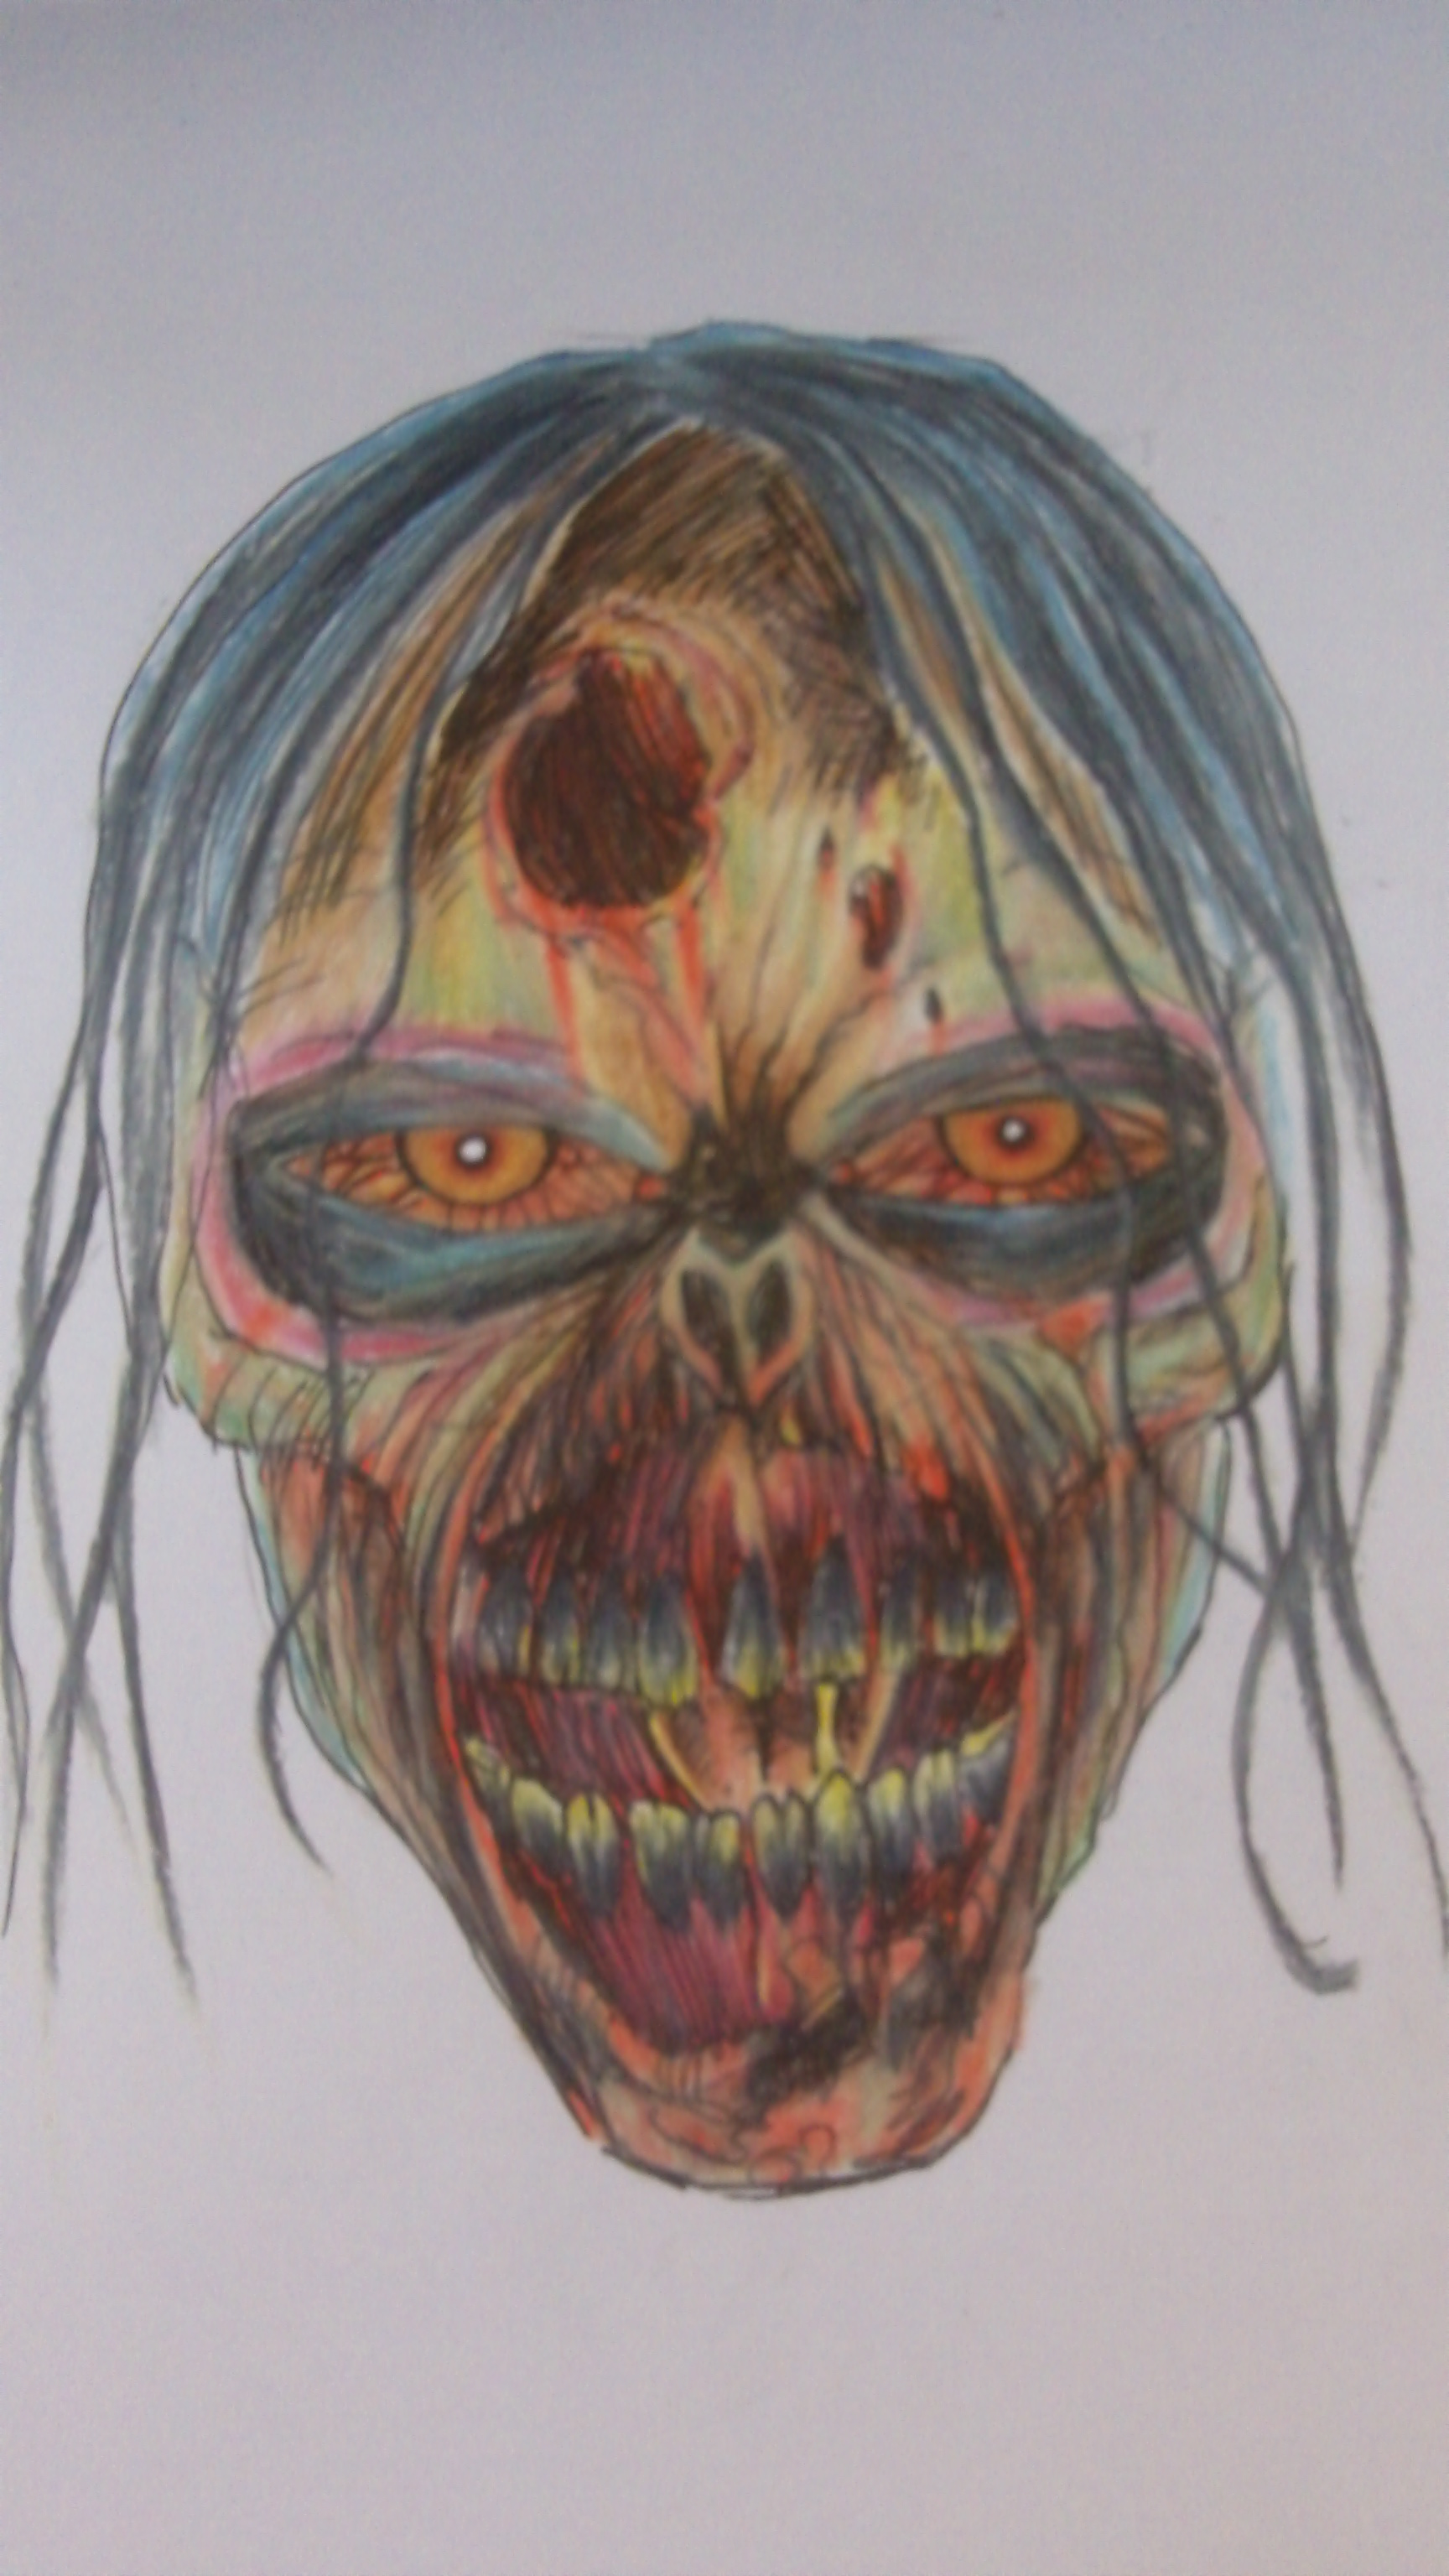 How To Draw A Walking Dead Zombie Head